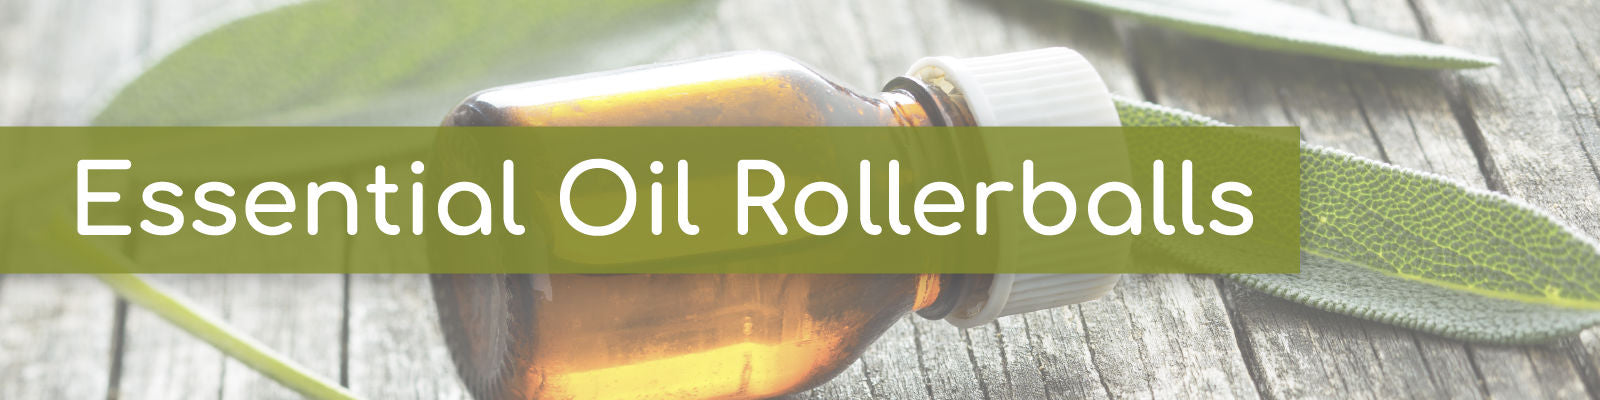 Essential oil rollerballs